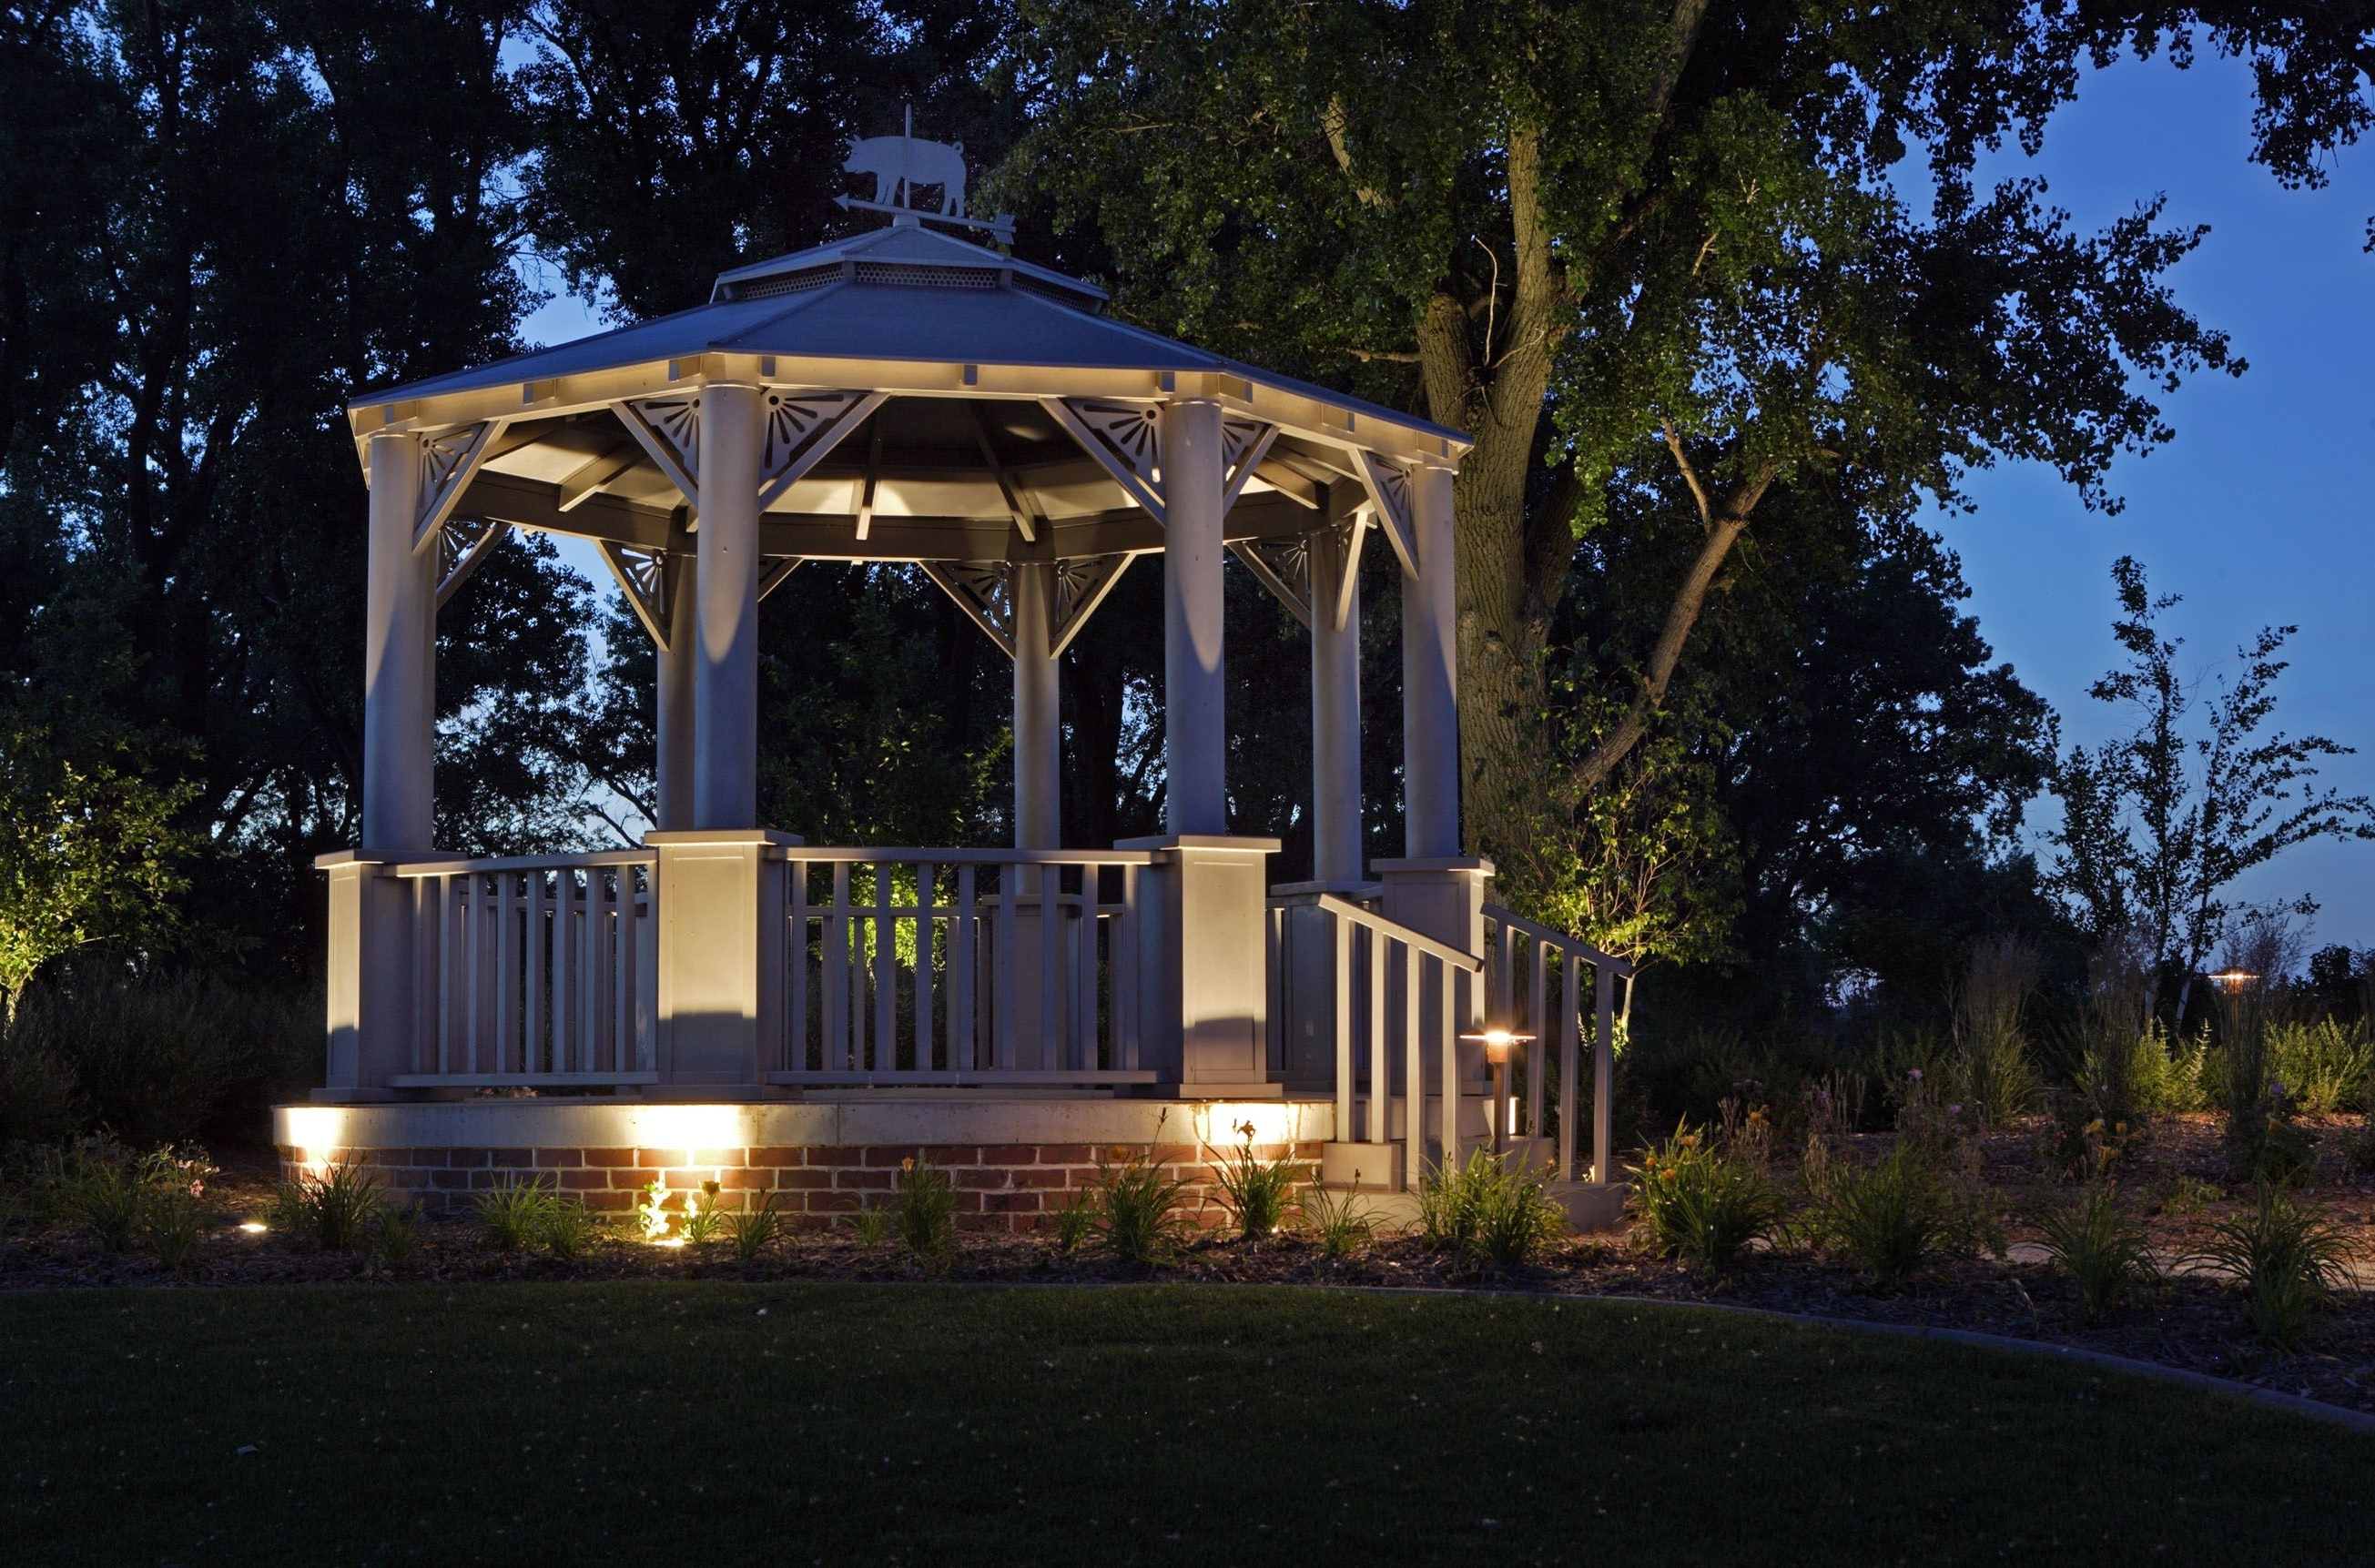 2019 Outdoor Gazebo Lanterns Pertaining To 43+ Gorgeous And Easy Diy Outdoor Lighting Ideas (View 1 of 20)